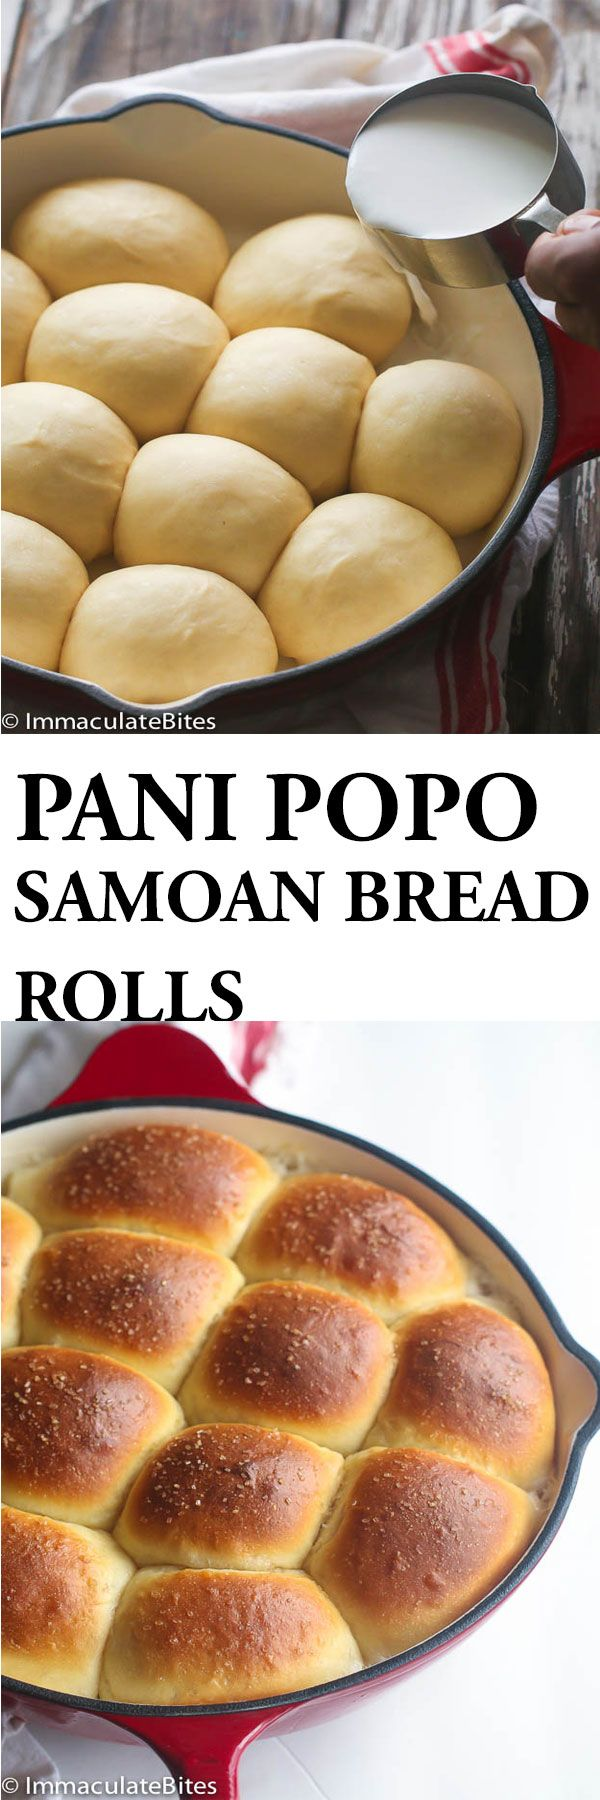 Samoan Coconut Bread Rolls aka Pani Popo. Decadent Sweet Dinner Rolls baked in coconut milk .Light, Airy and Fluffy .Unbelievable good!! My immense love of anything and everything coconut coupled with my continued urge to make my weekend morning worth looking forward to, steer me, towards this Coconut Samoan Sweet Bread. I knew when I …